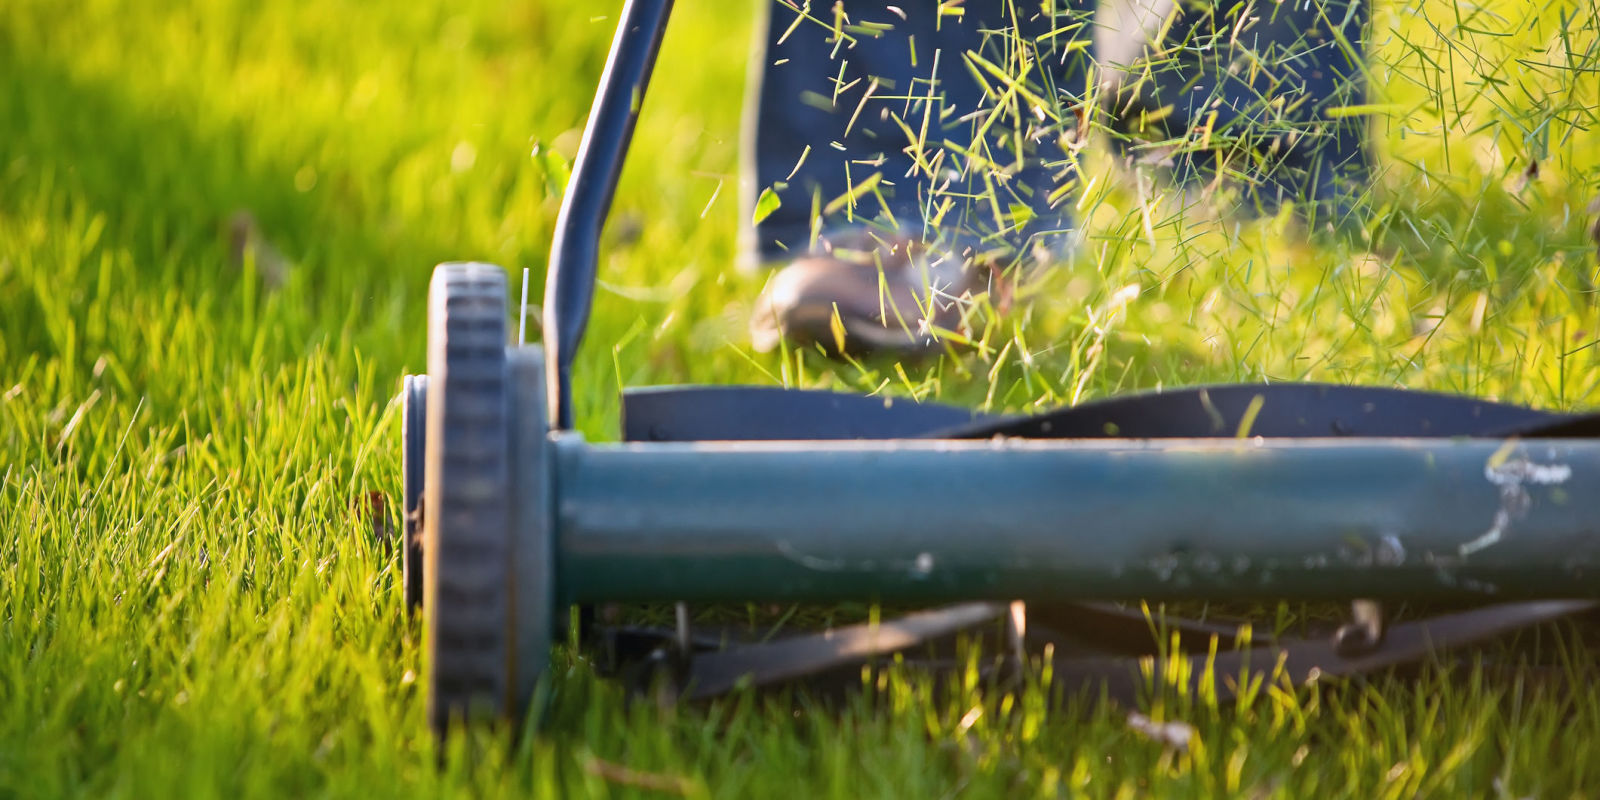 How often should you mow your lawn lawn mowing tips for How often should you mow your lawn